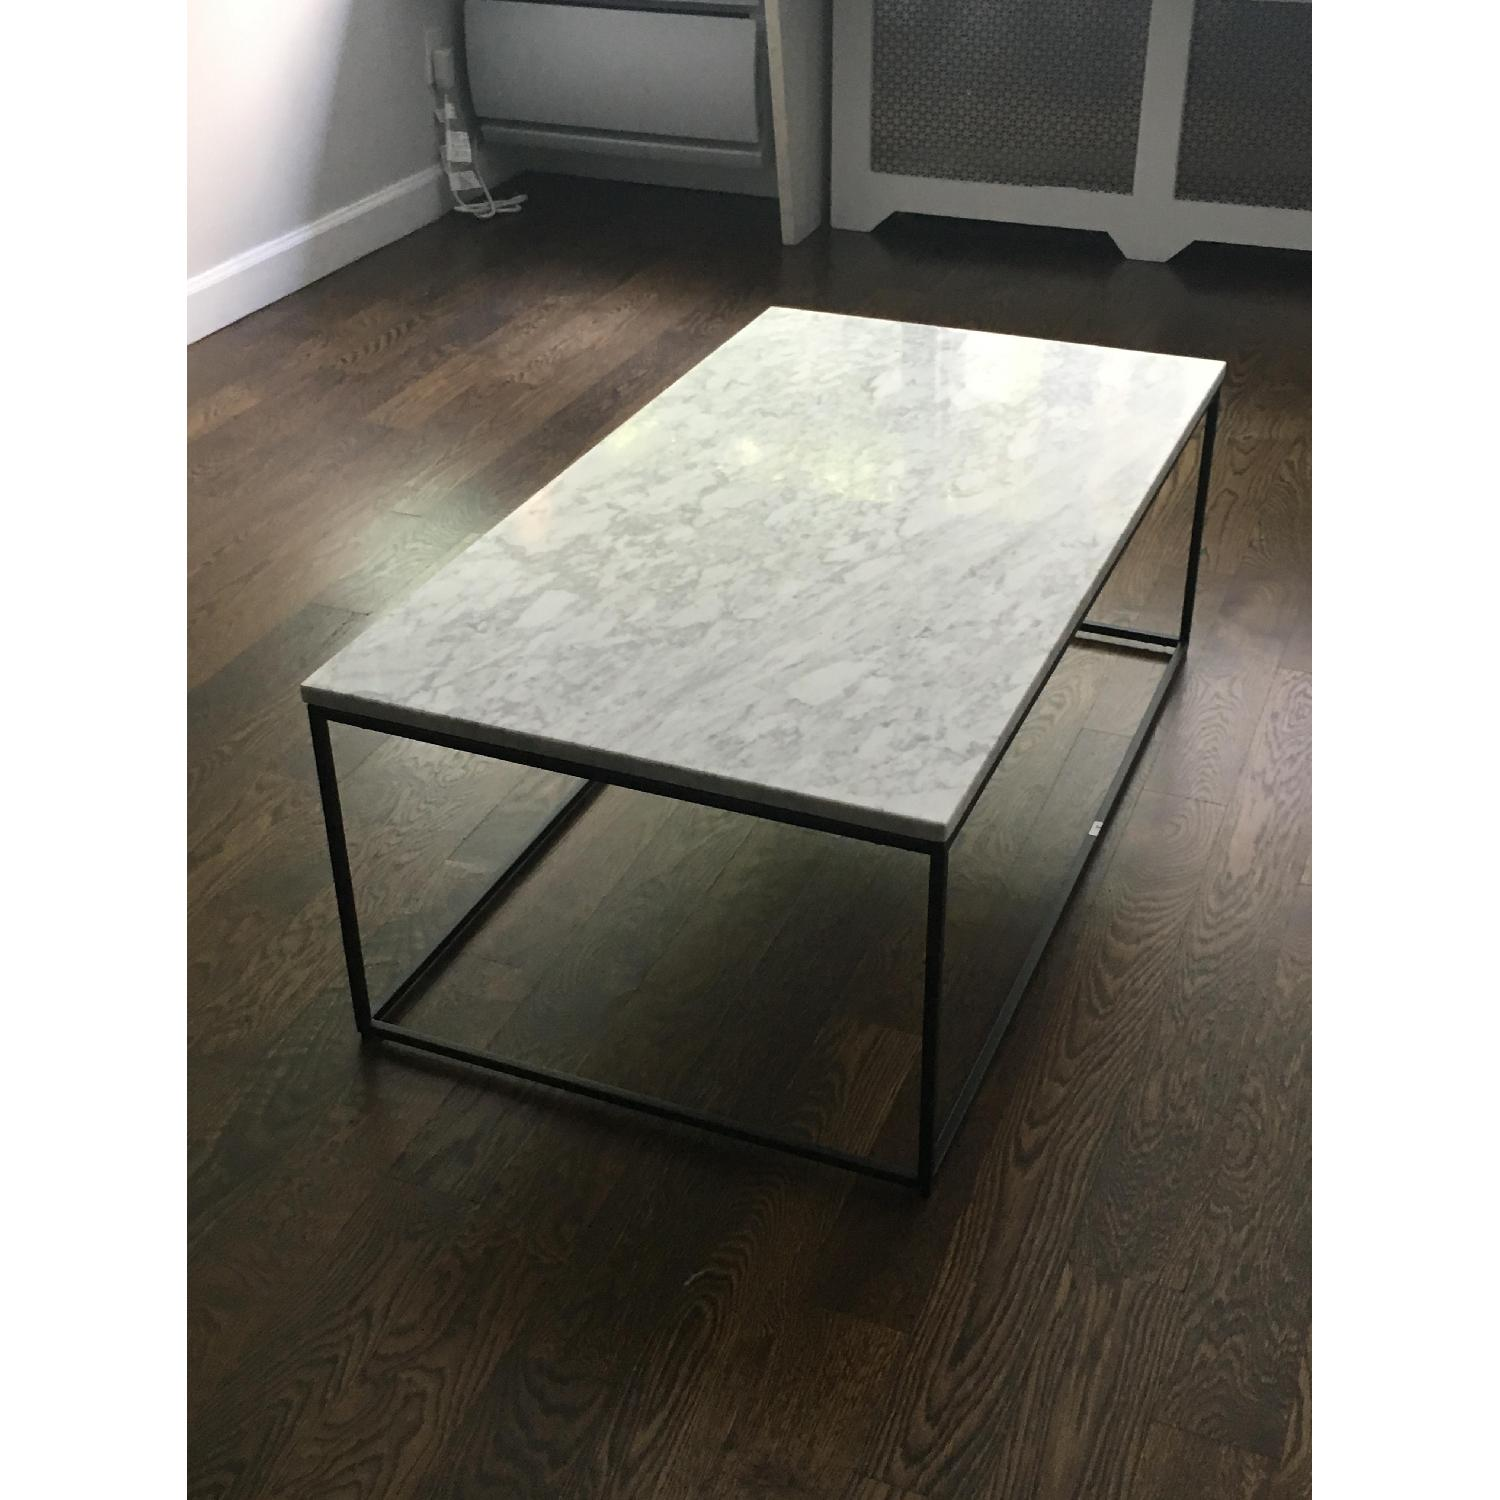 Awesome West Elm Streamline Coffee Table In White Marble Aptdeco Caraccident5 Cool Chair Designs And Ideas Caraccident5Info